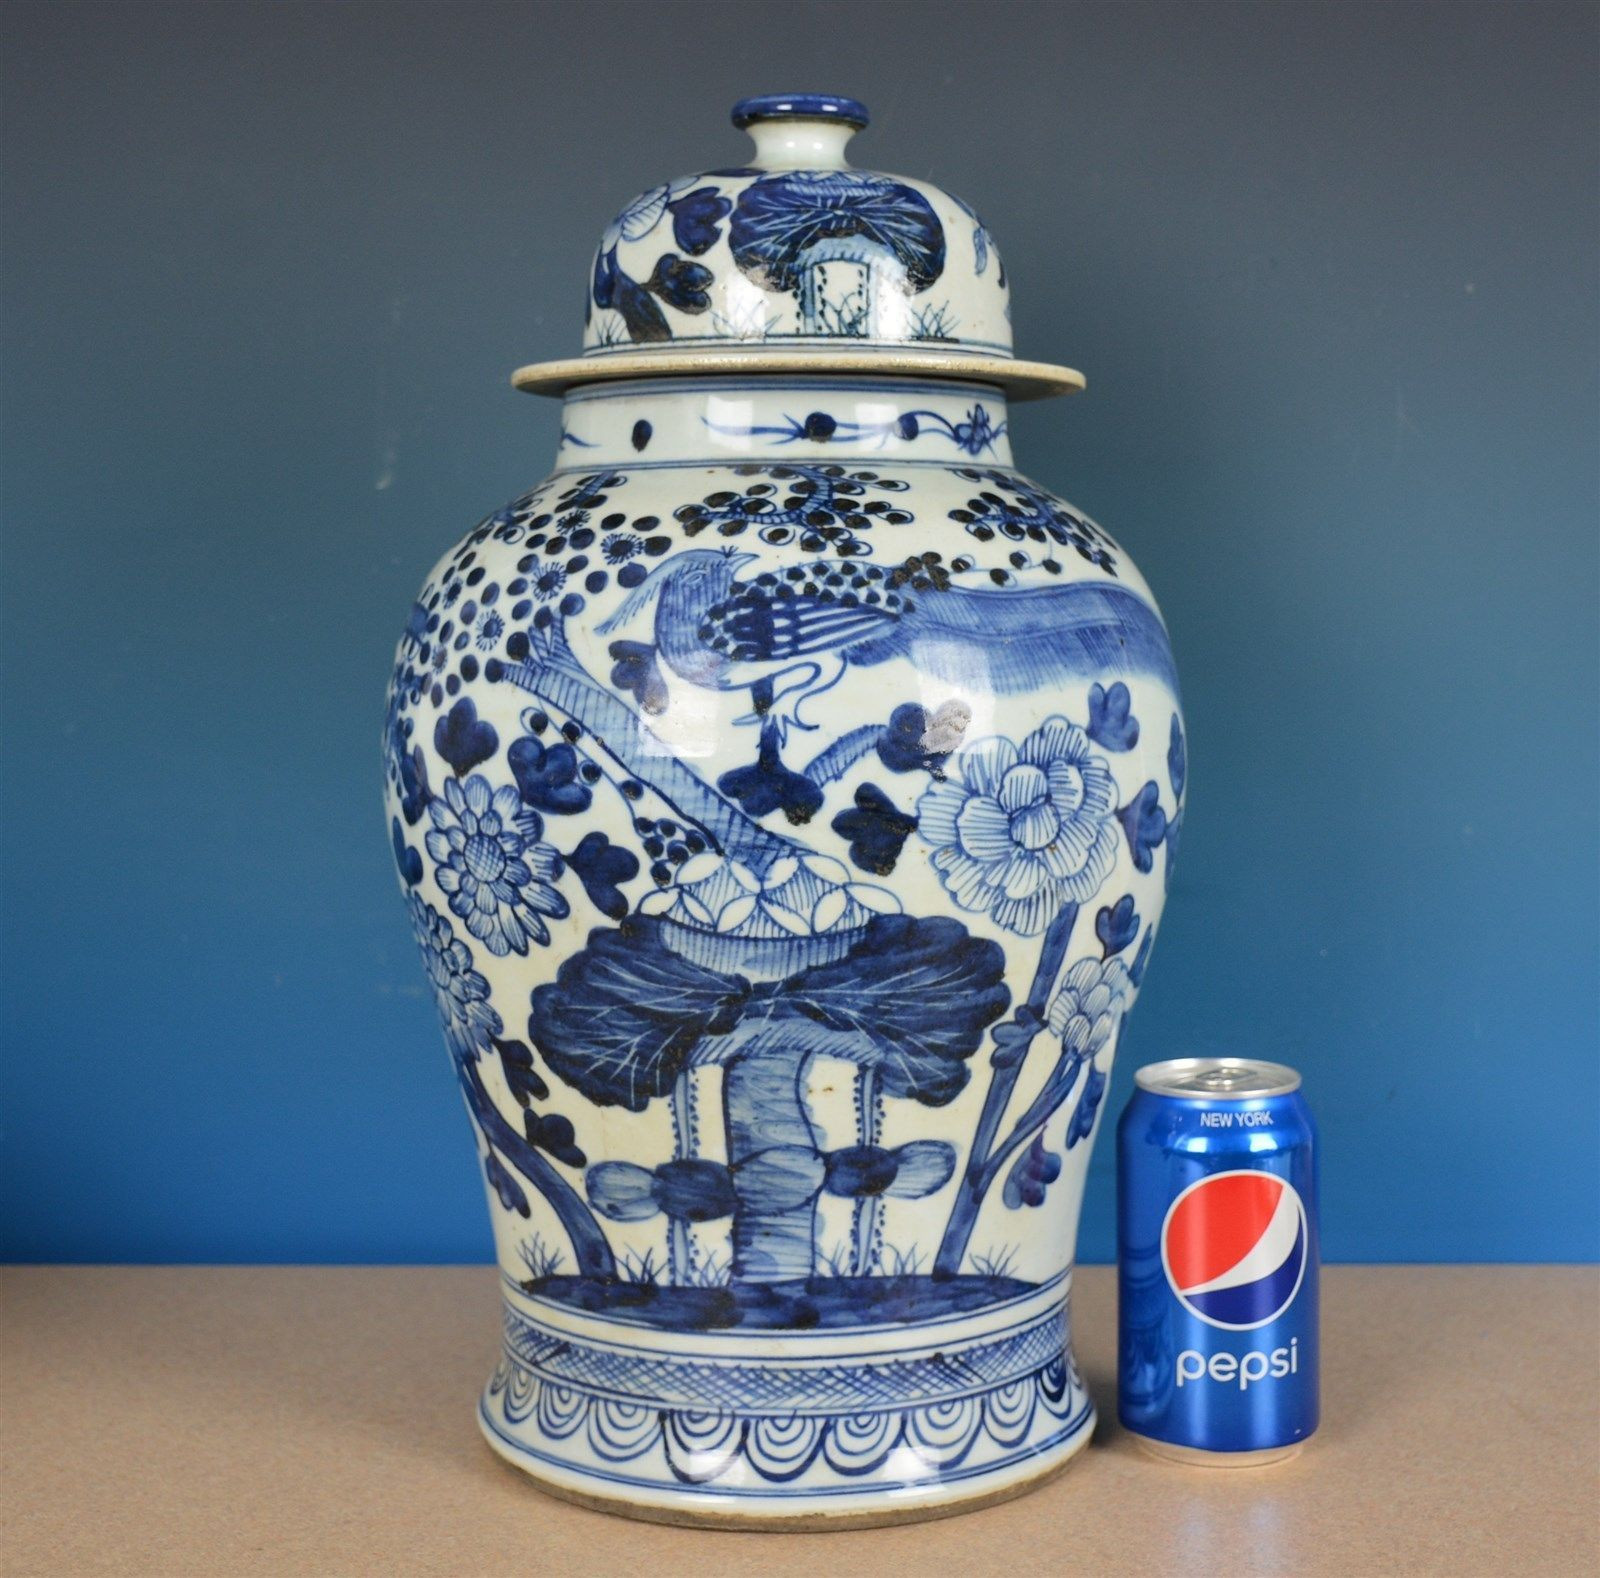 chinese red lacquer vase of magnificent antique chinese blue and white porcelain vase rare s7011 for antique magnificent antique chinese blue and white porcelain vase rare s7011 please retweet